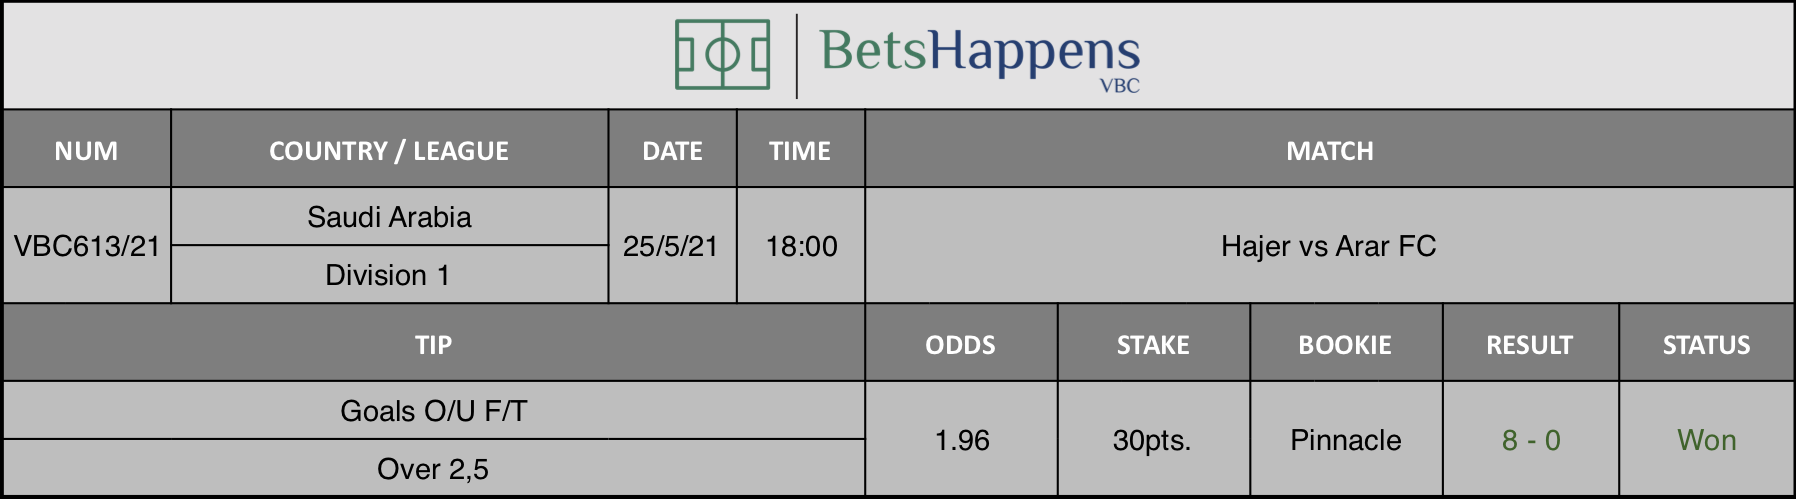 Results of our tip for the Hajer vs Arar FC match where Goals O/U F/T Over 2,5 is recommended.